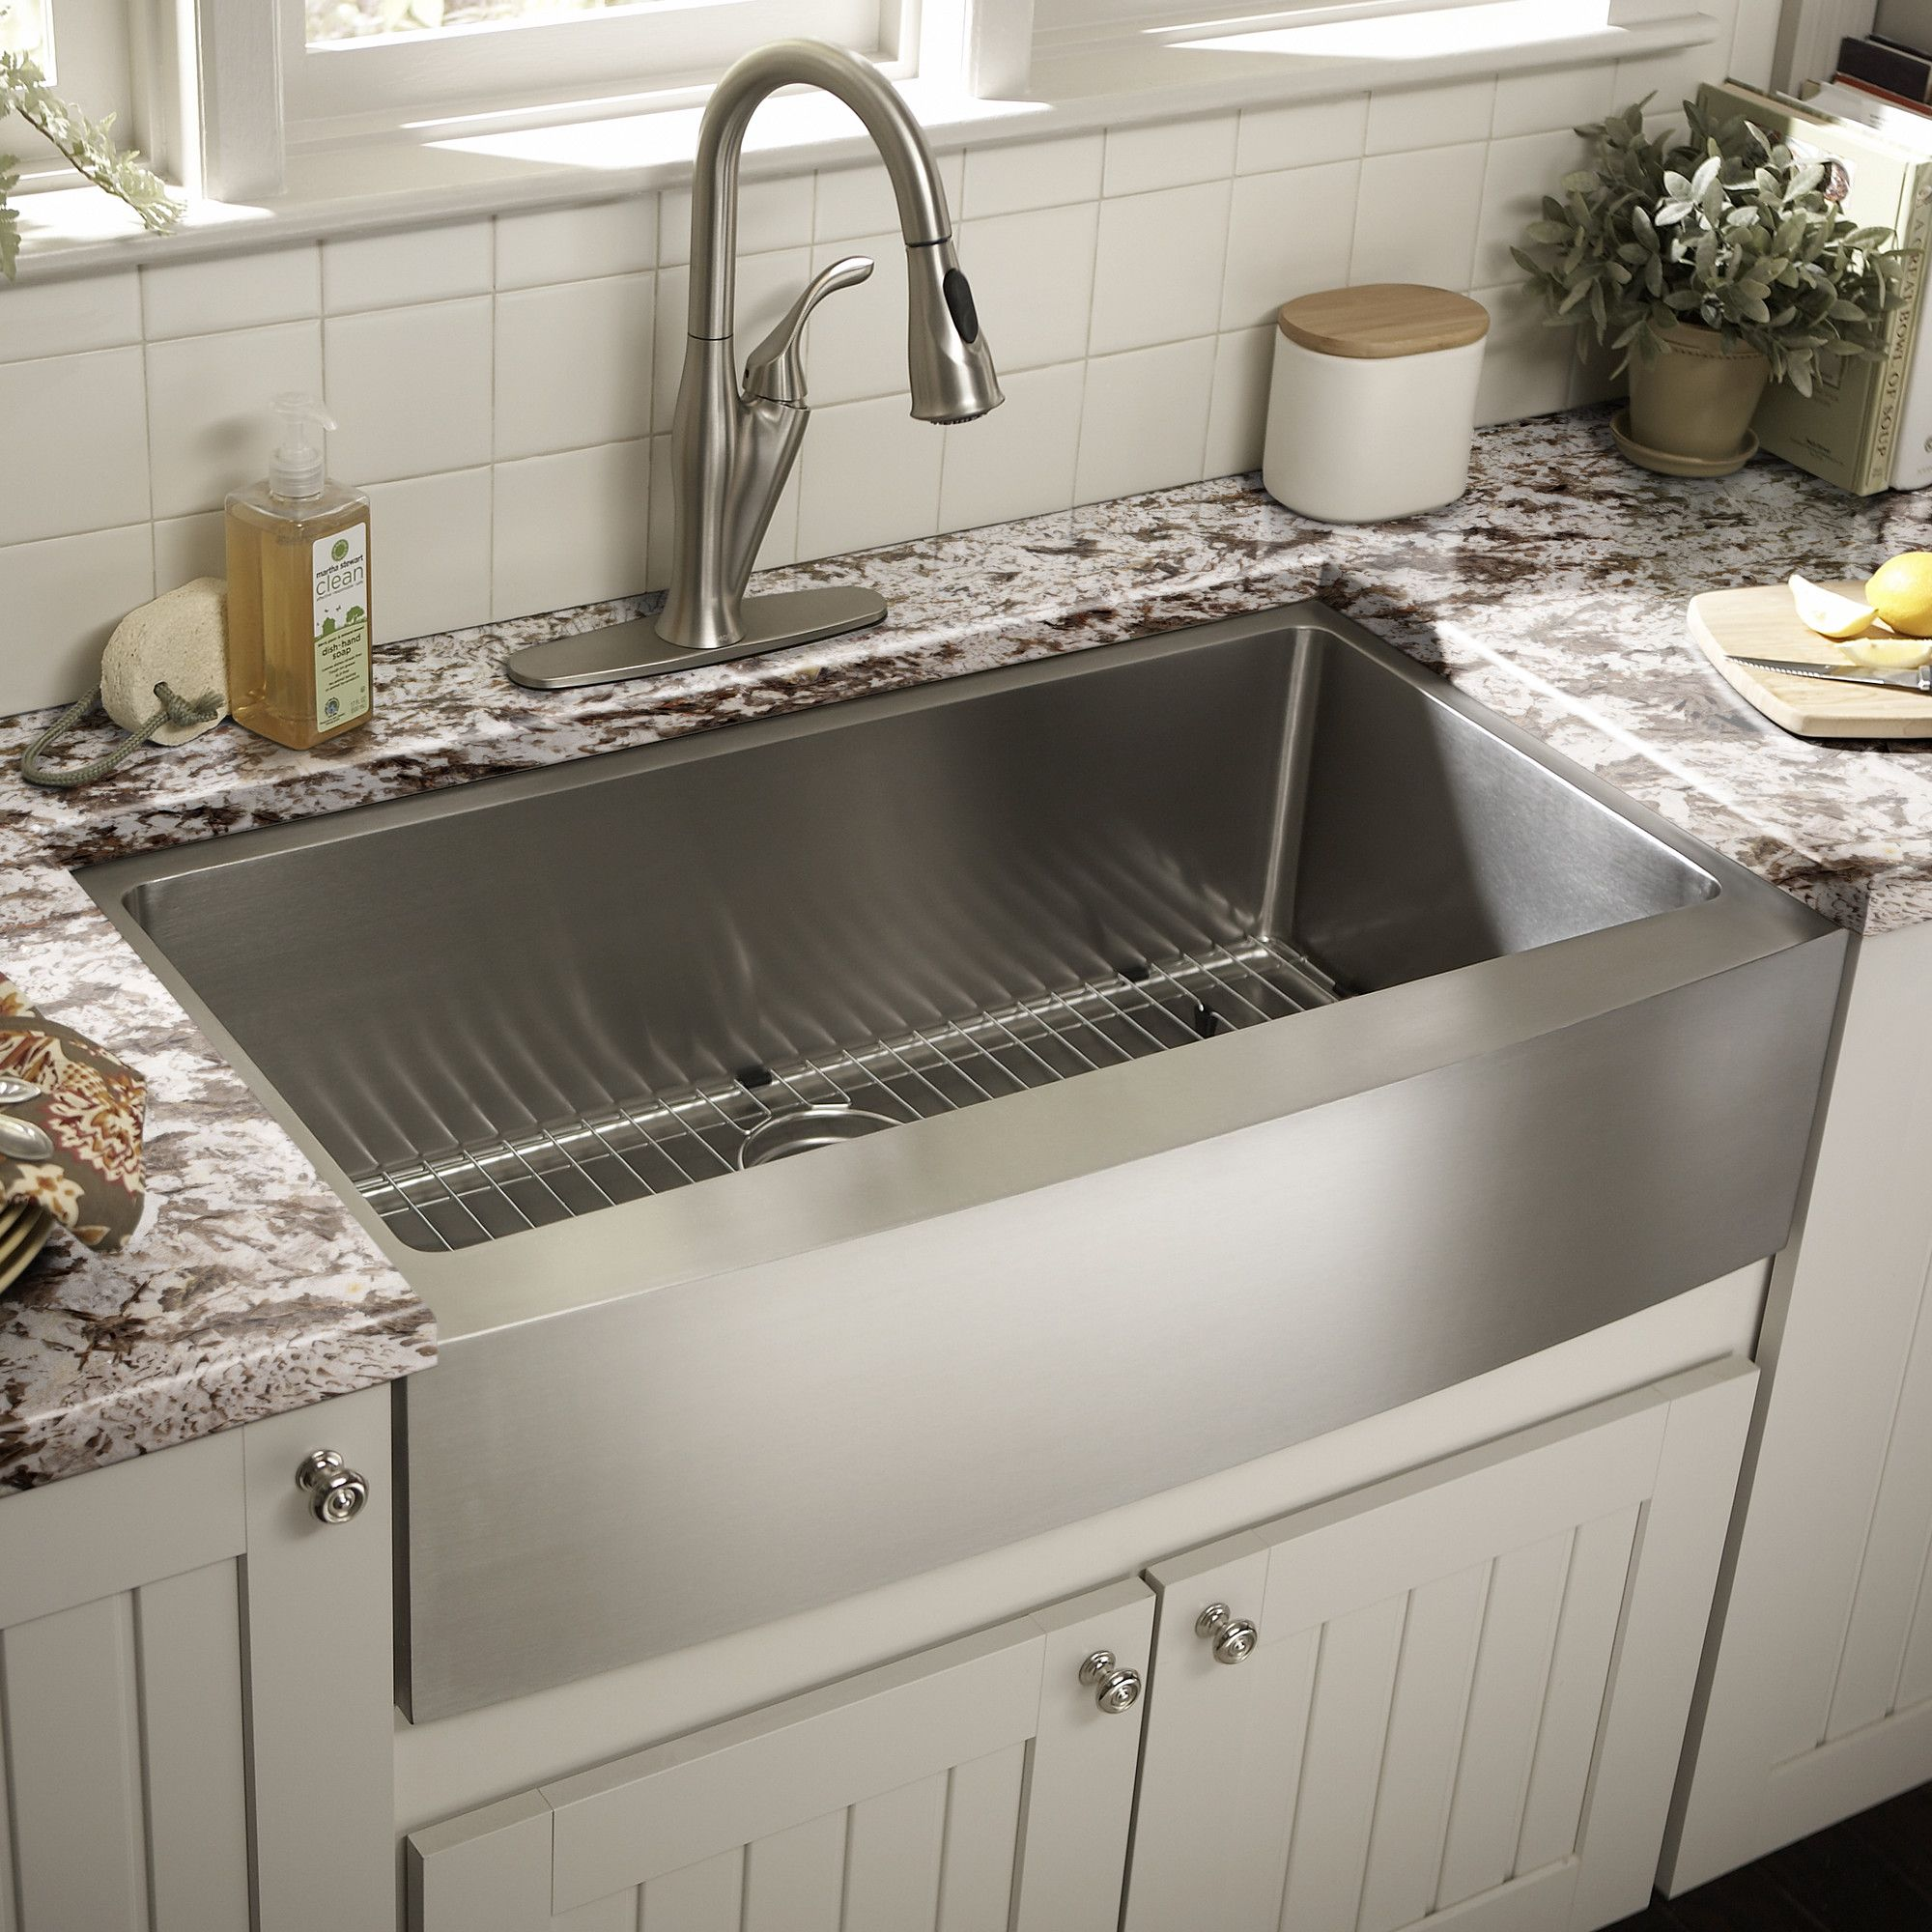 You Ll Love The 22 Single Bowl Farmhouse Kitchen Sink At Wayfair Great Deals On All Kitchen Farmhouse Sink Kitchen Kitchen Sink Decor Sinks Kitchen Stainless